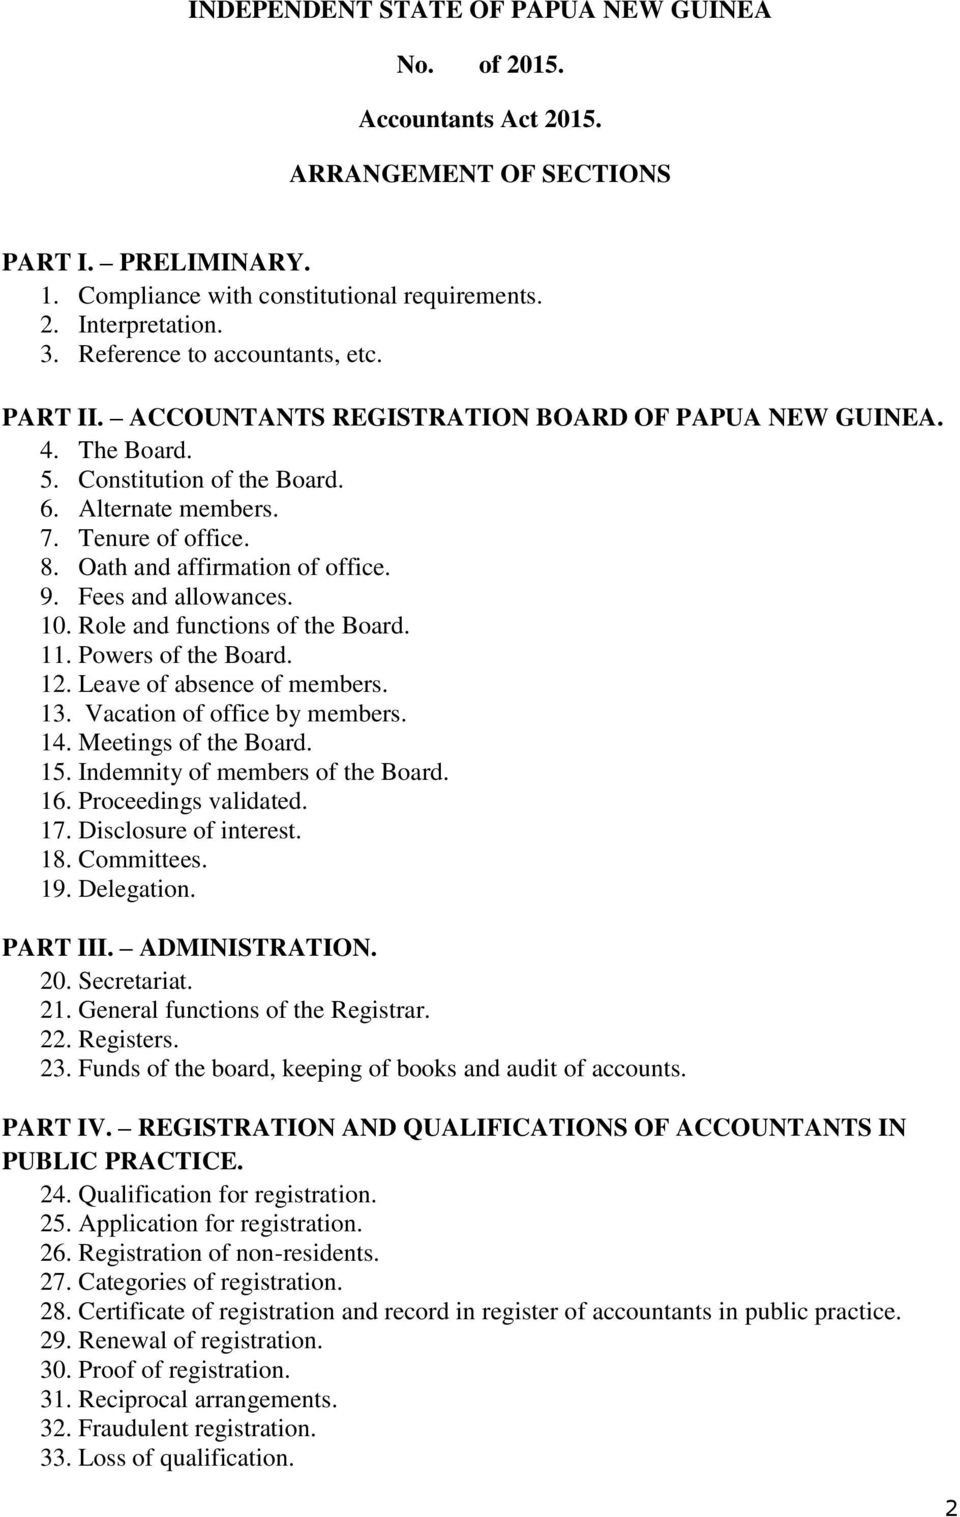 Oath and affirmation of office. 9. Fees and allowances. 10. Role and functions of the Board. 11. Powers of the Board. 12. Leave of absence of members. 13. Vacation of office by members. 14.